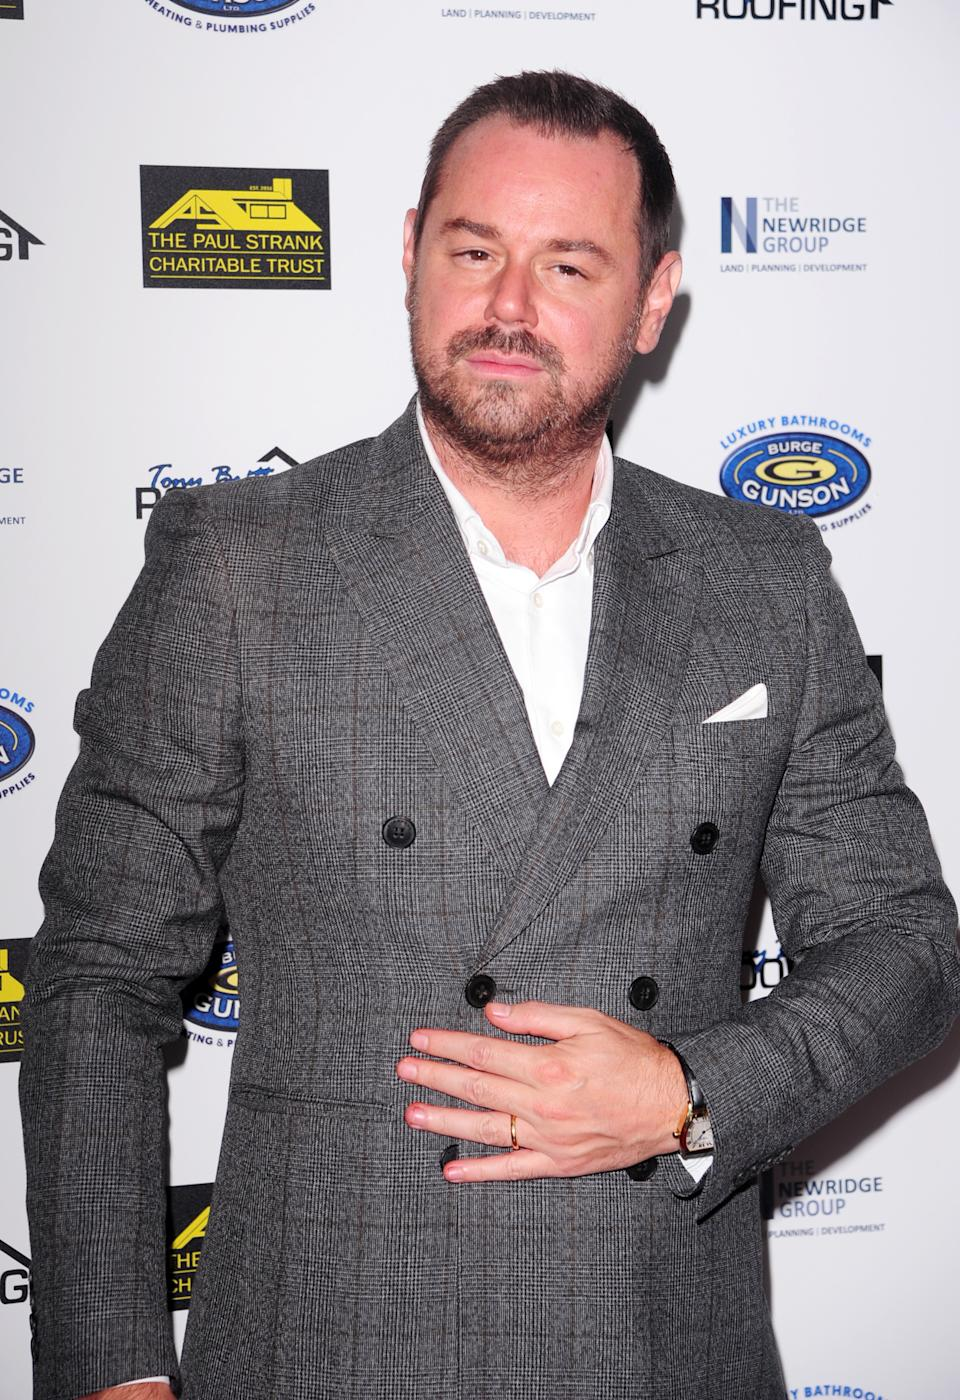 Danny Dyer attends the Paul Strank Charity Gala supporting Shooting Star Children's Hospices & Rays of Sunshine Charity at the Bank of England Sports Centre in London. (Photo by Keith Mayhew/SOPA Images/LightRocket via Getty Images)